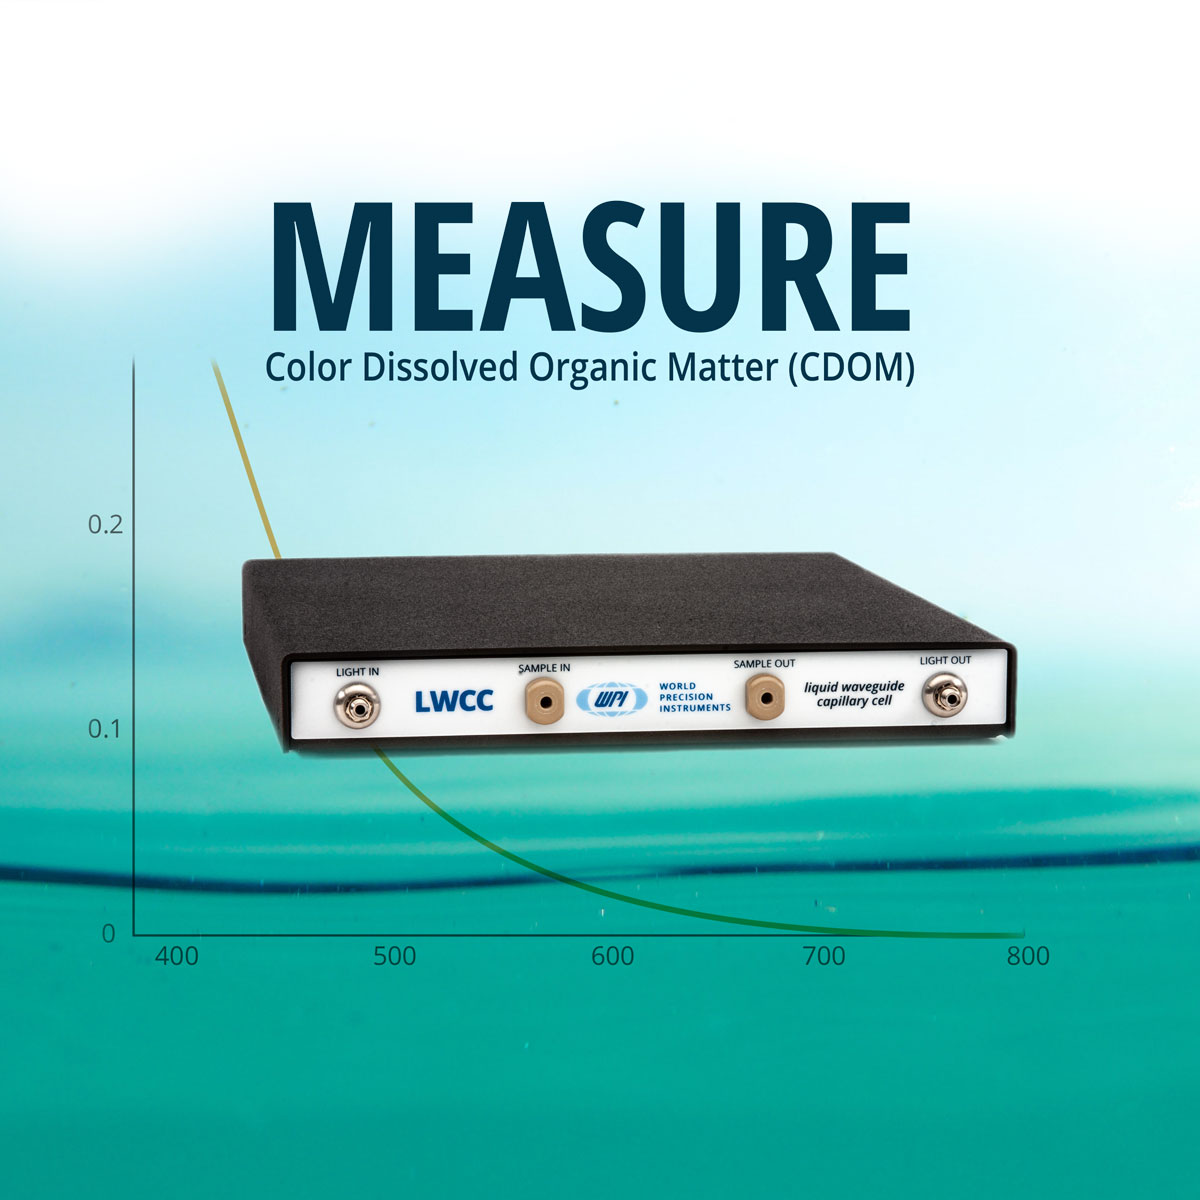 Easily Measure Color Dissolved Organic Matter (CDOM)